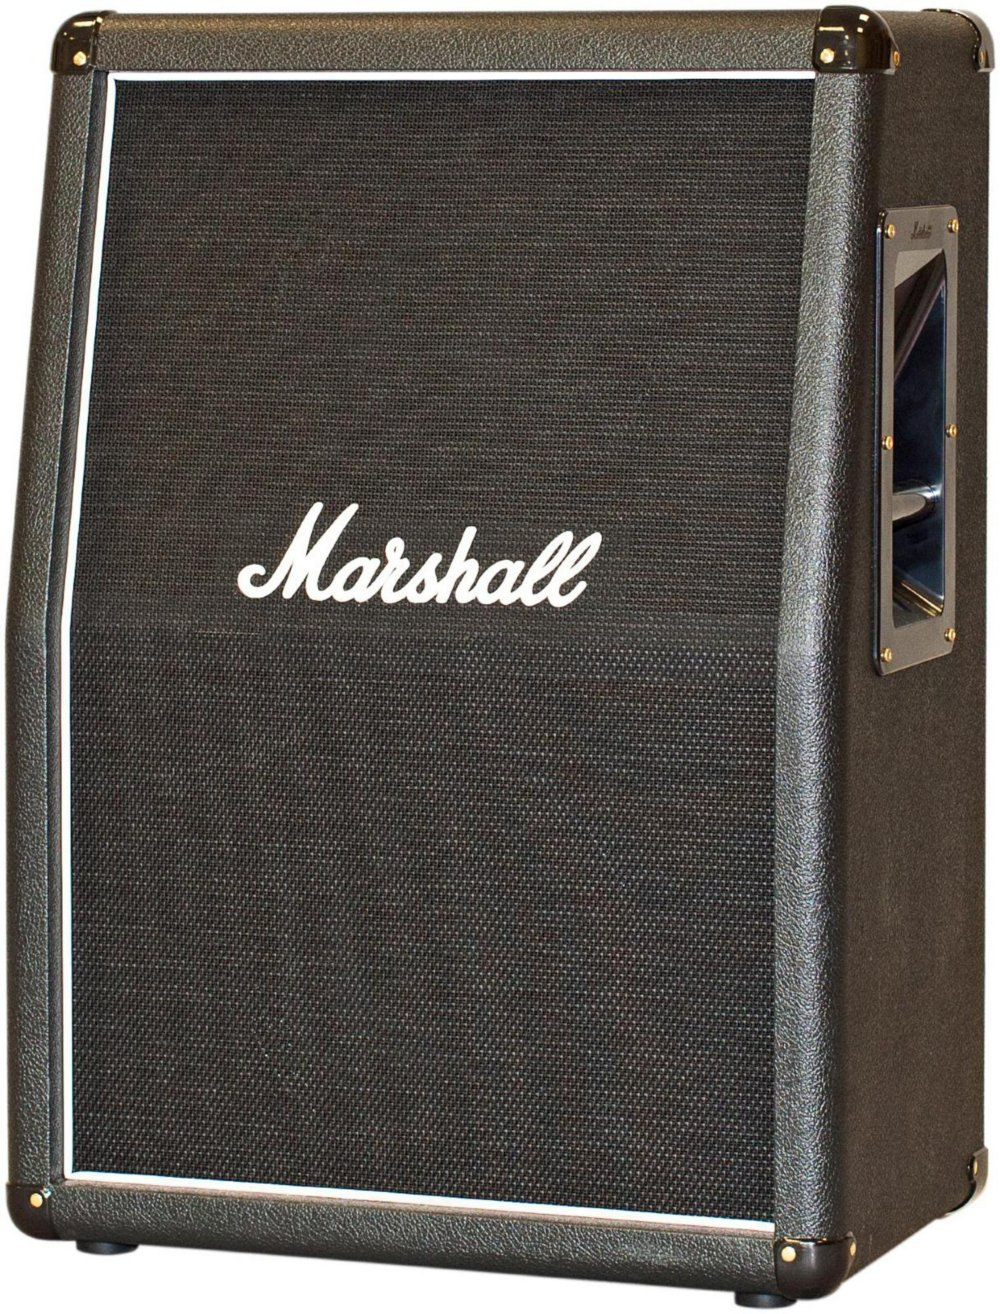 Marshall MX212A - 160W 2x12'' Vertical Slant Cabinet